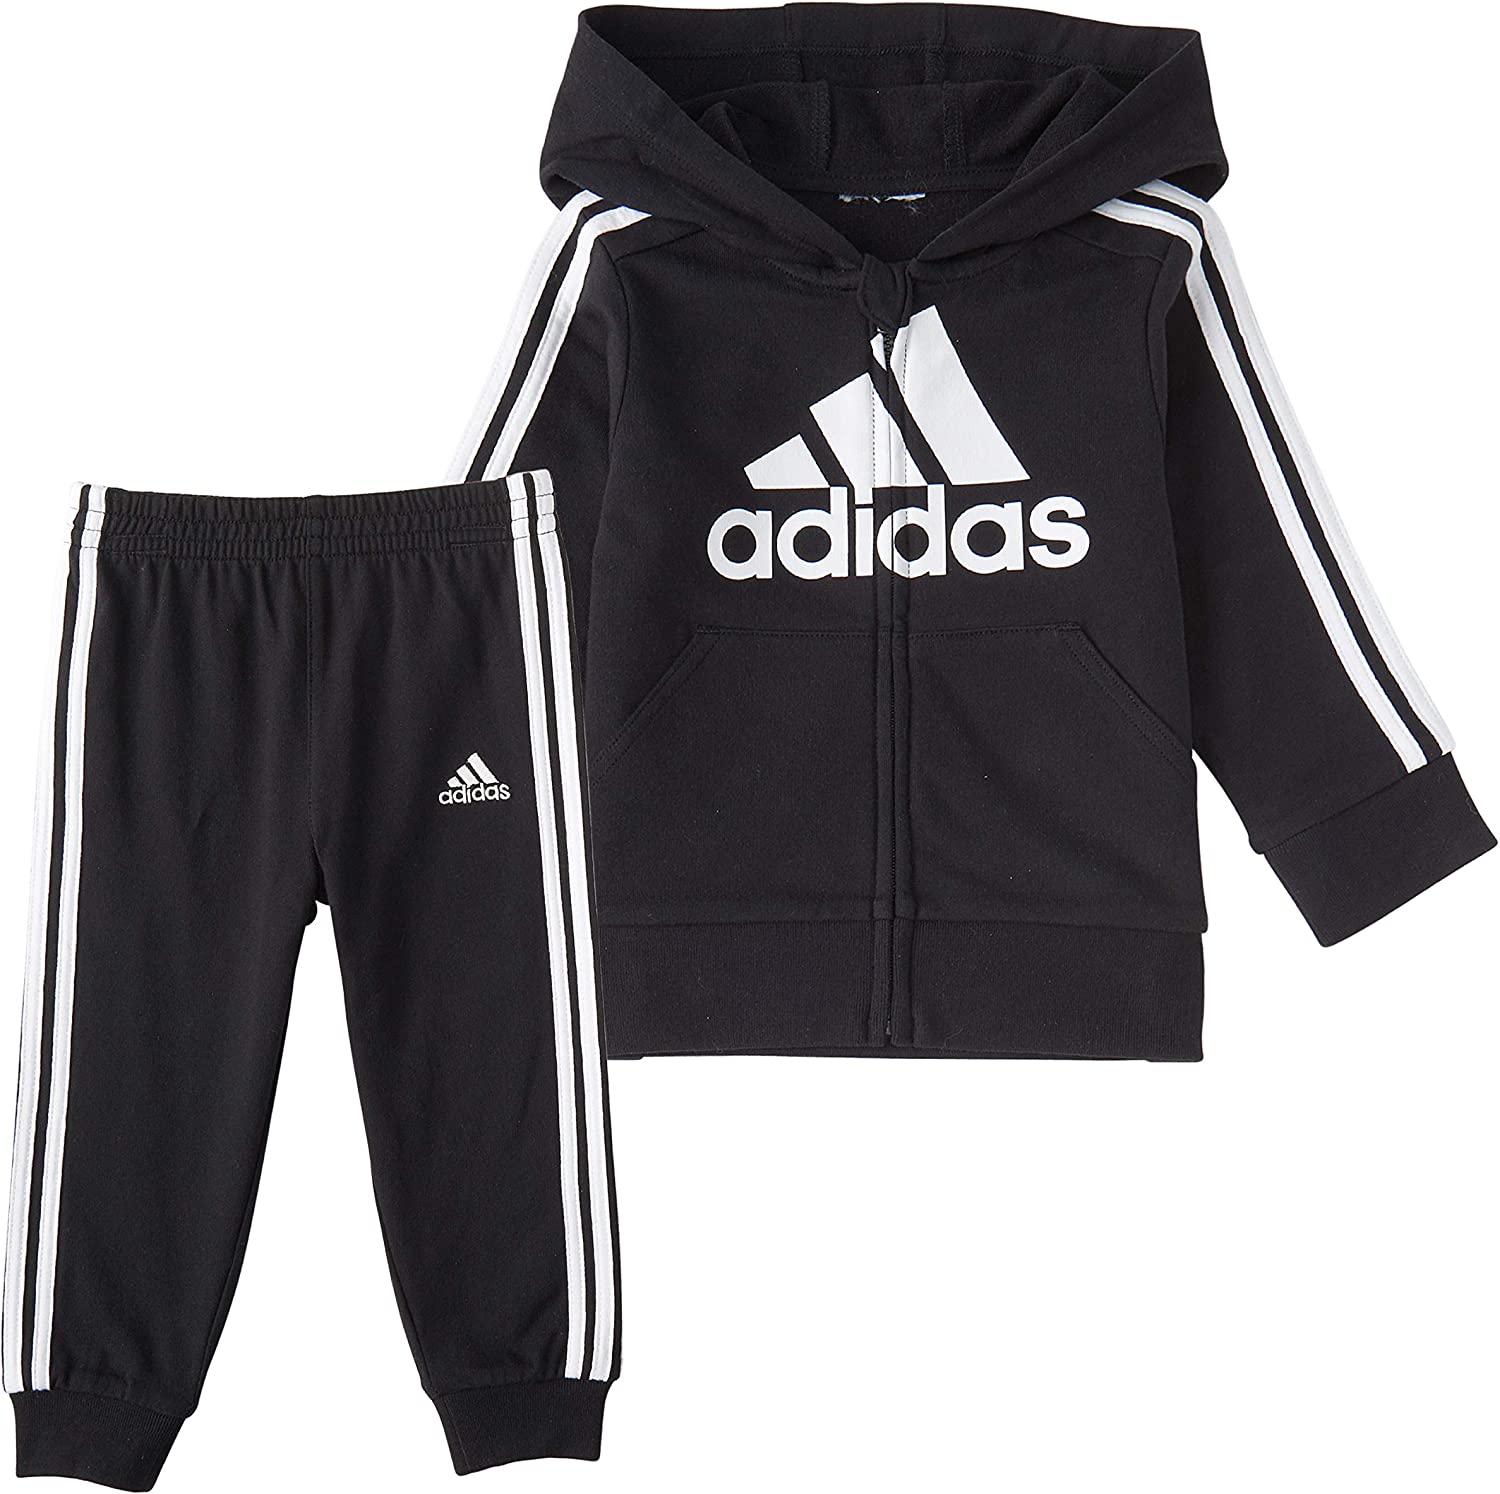 adidas Boys Zip Hoodie and Pant Set